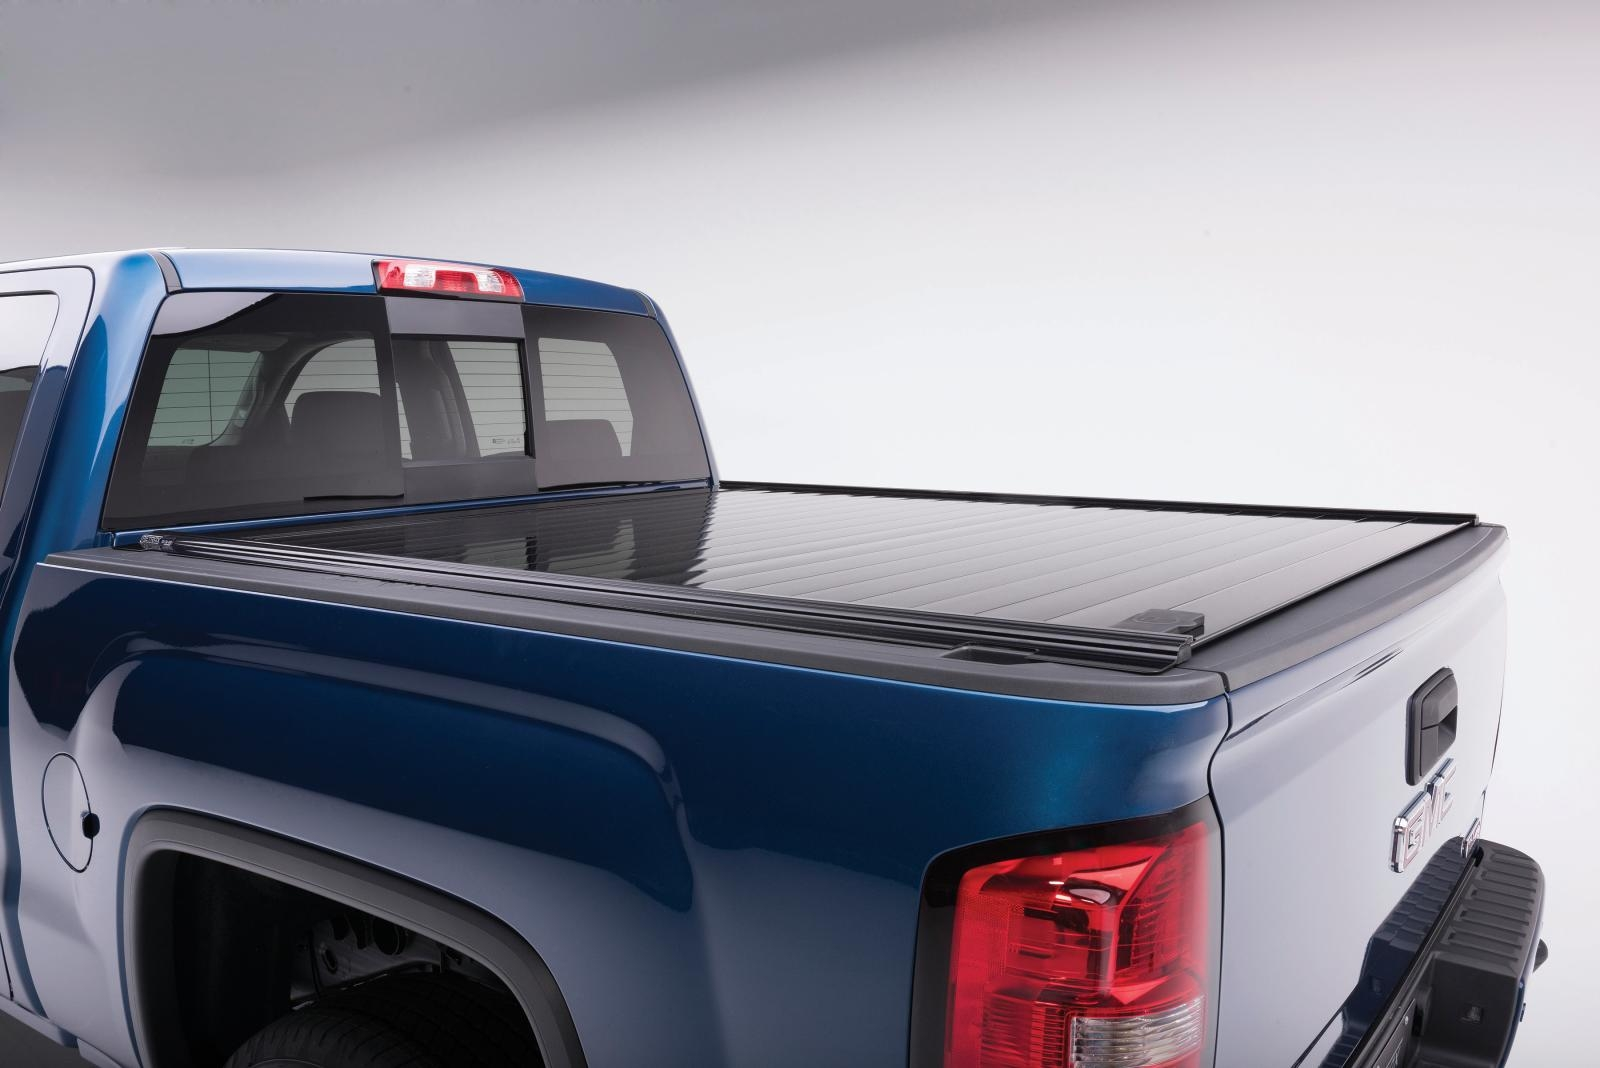 Retrax Retractable Truck Bed Cover Sales Amp Installation In